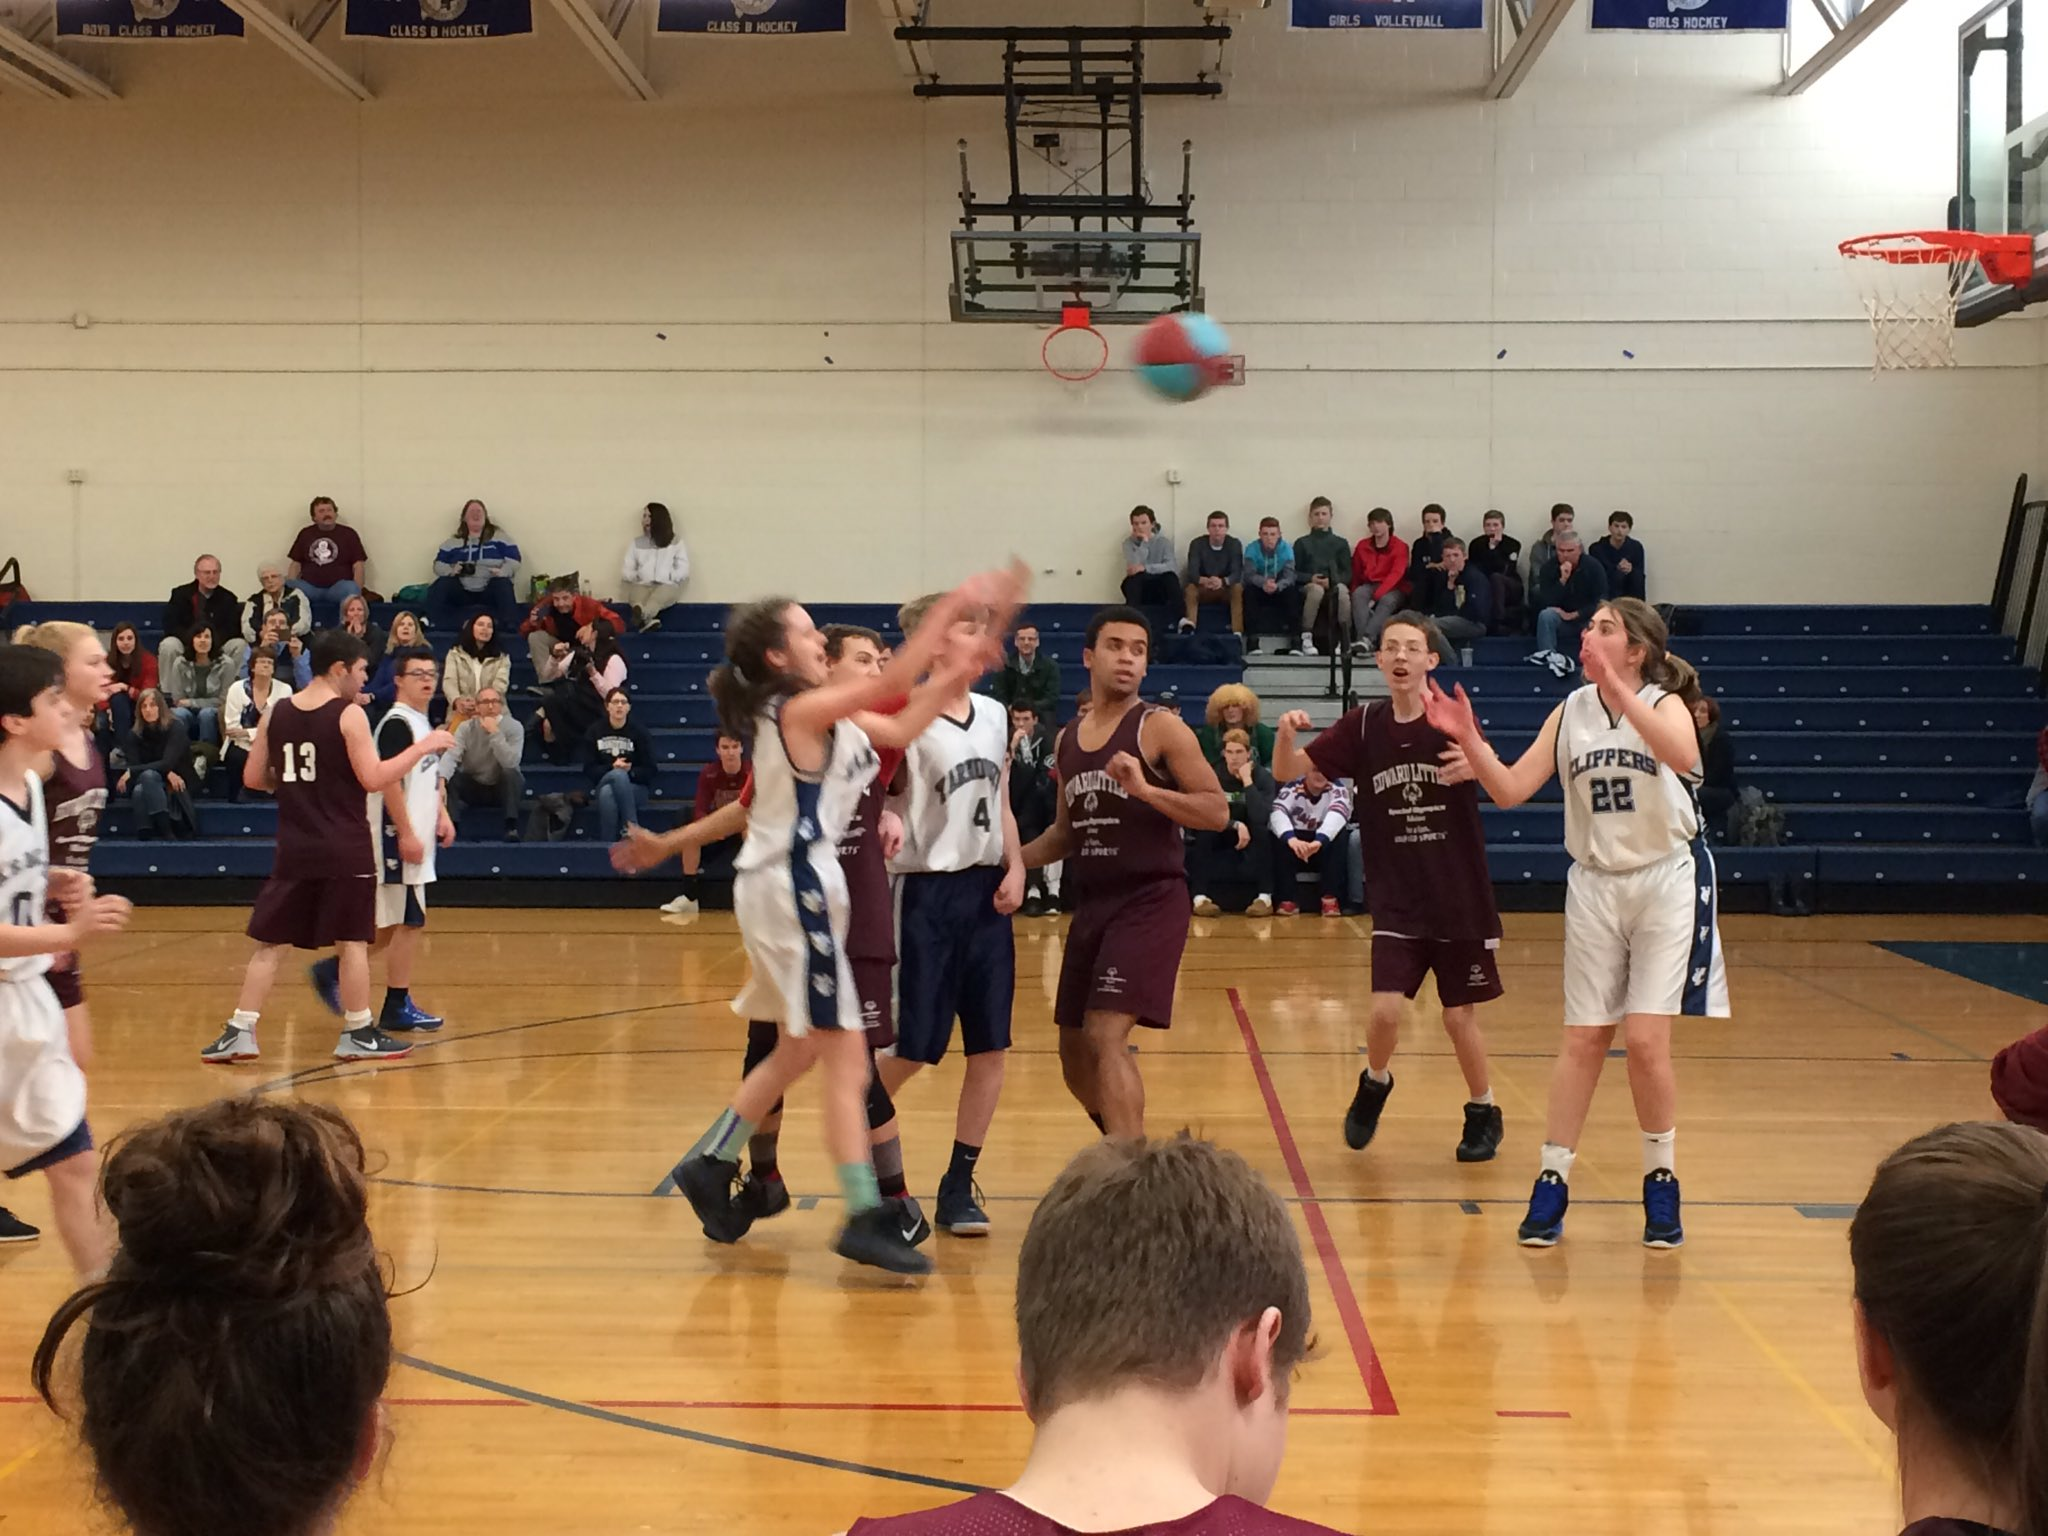 Unified Basketball Edward Little HS vs @YarmouthHS https://t.co/IPjCN3nepJ